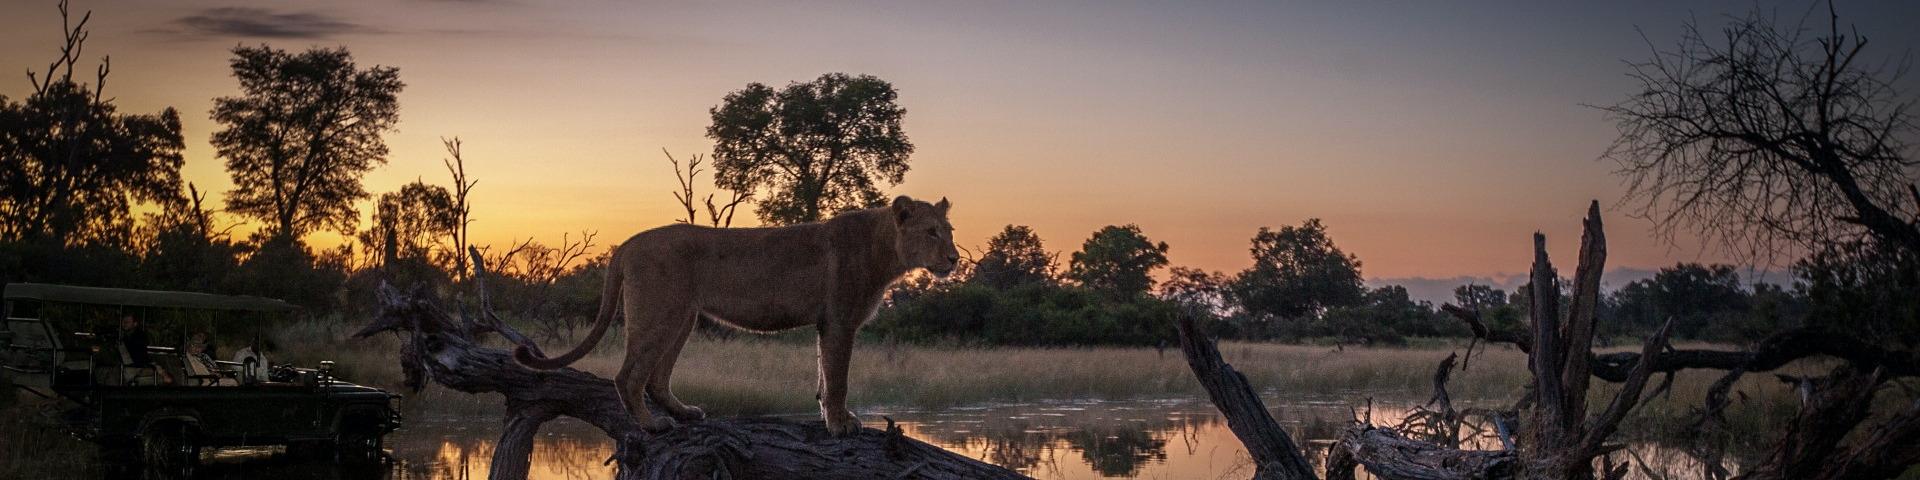 Tours and Safaris to Okavango Delta - Botswana